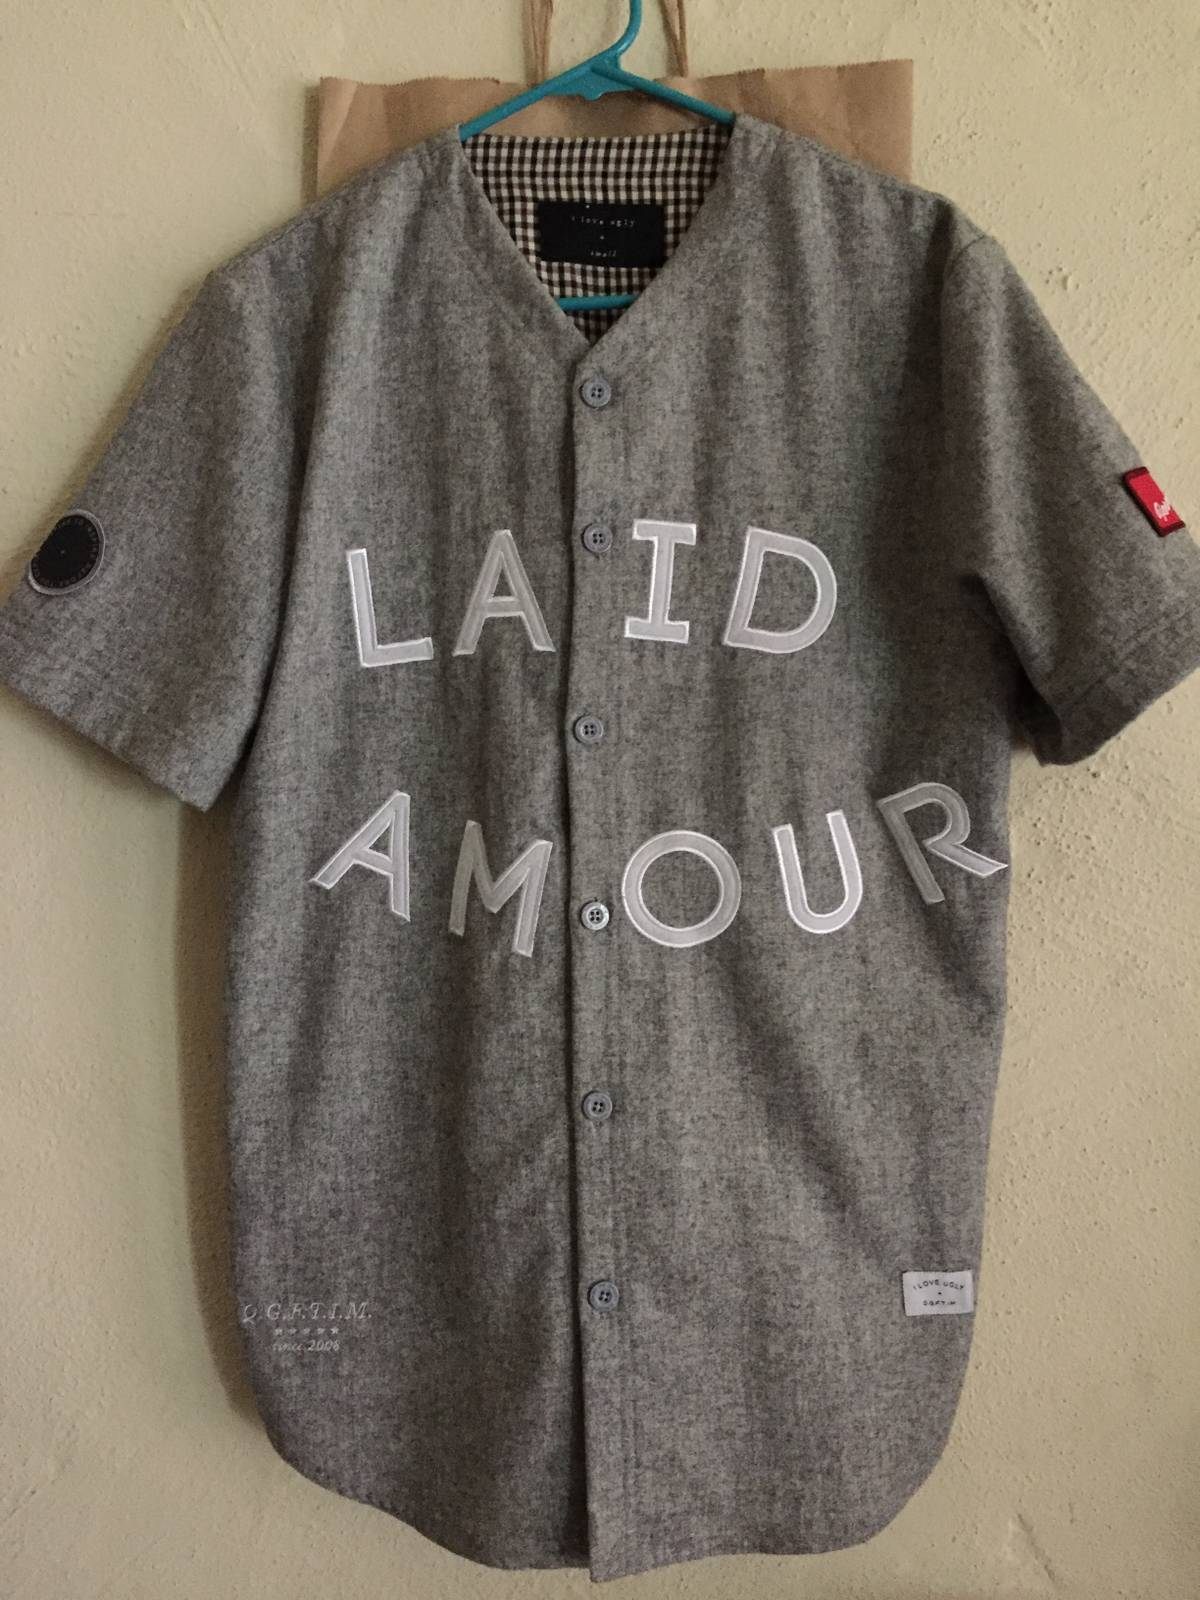 a7006449f34 I Love Ugly Sosa Laid Amour Baseball Jersey Size s - Jerseys for ...